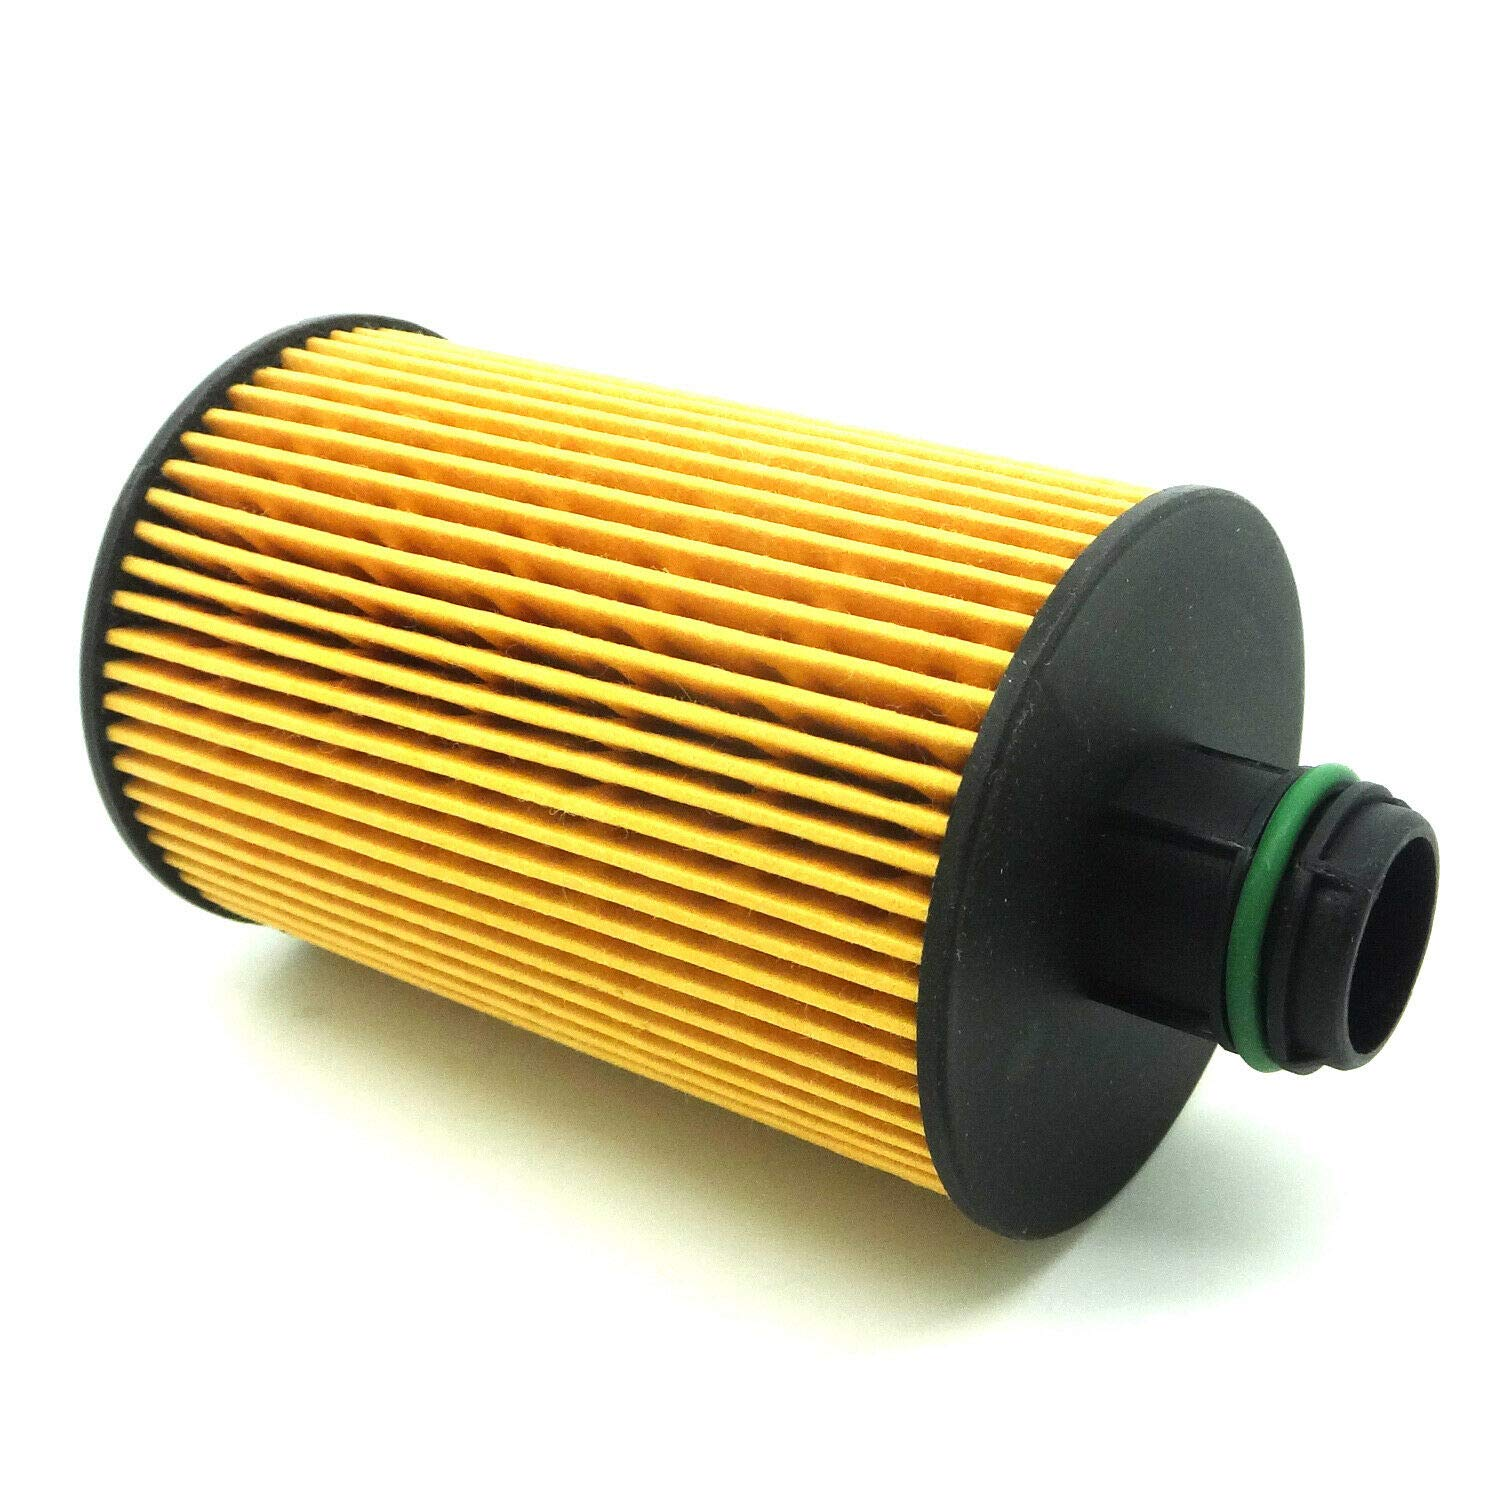 2014-18 Ram 1500 68229 402AA Extended Life Fits 2014-18 Jeep Grand Cherokee Conpus Oil Filter 68109 834AA